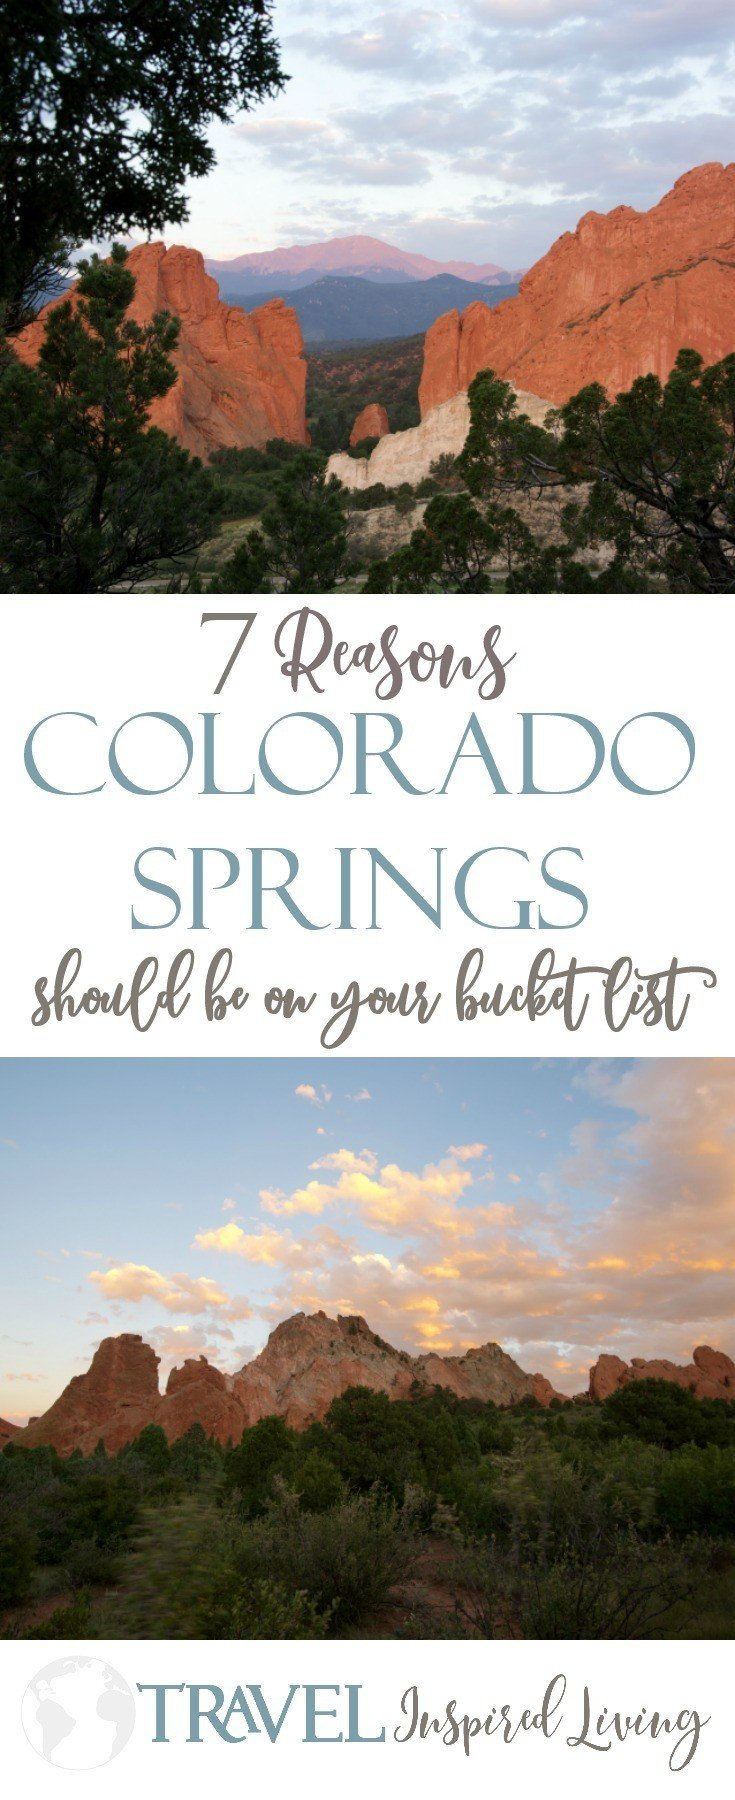 7 Reasons Colorado Springs should be on your bucket list and a few may surprise you.